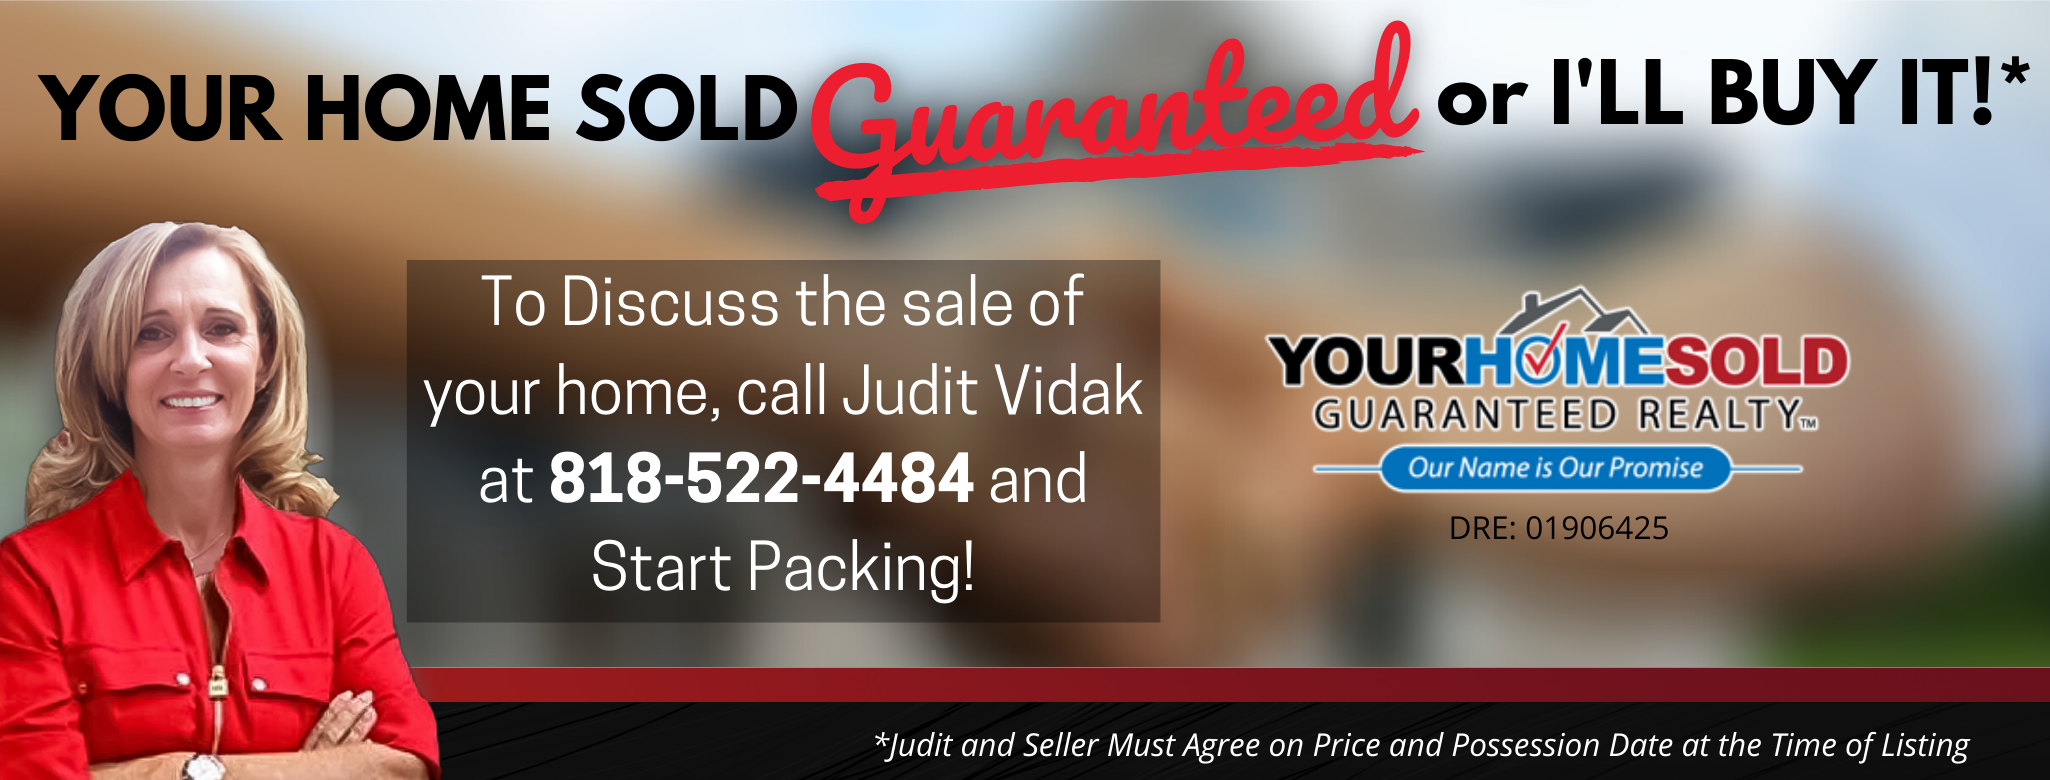 YOUR HOME SOLD GUARANTEED REALTY TEAM JUDIT VIDAK logo